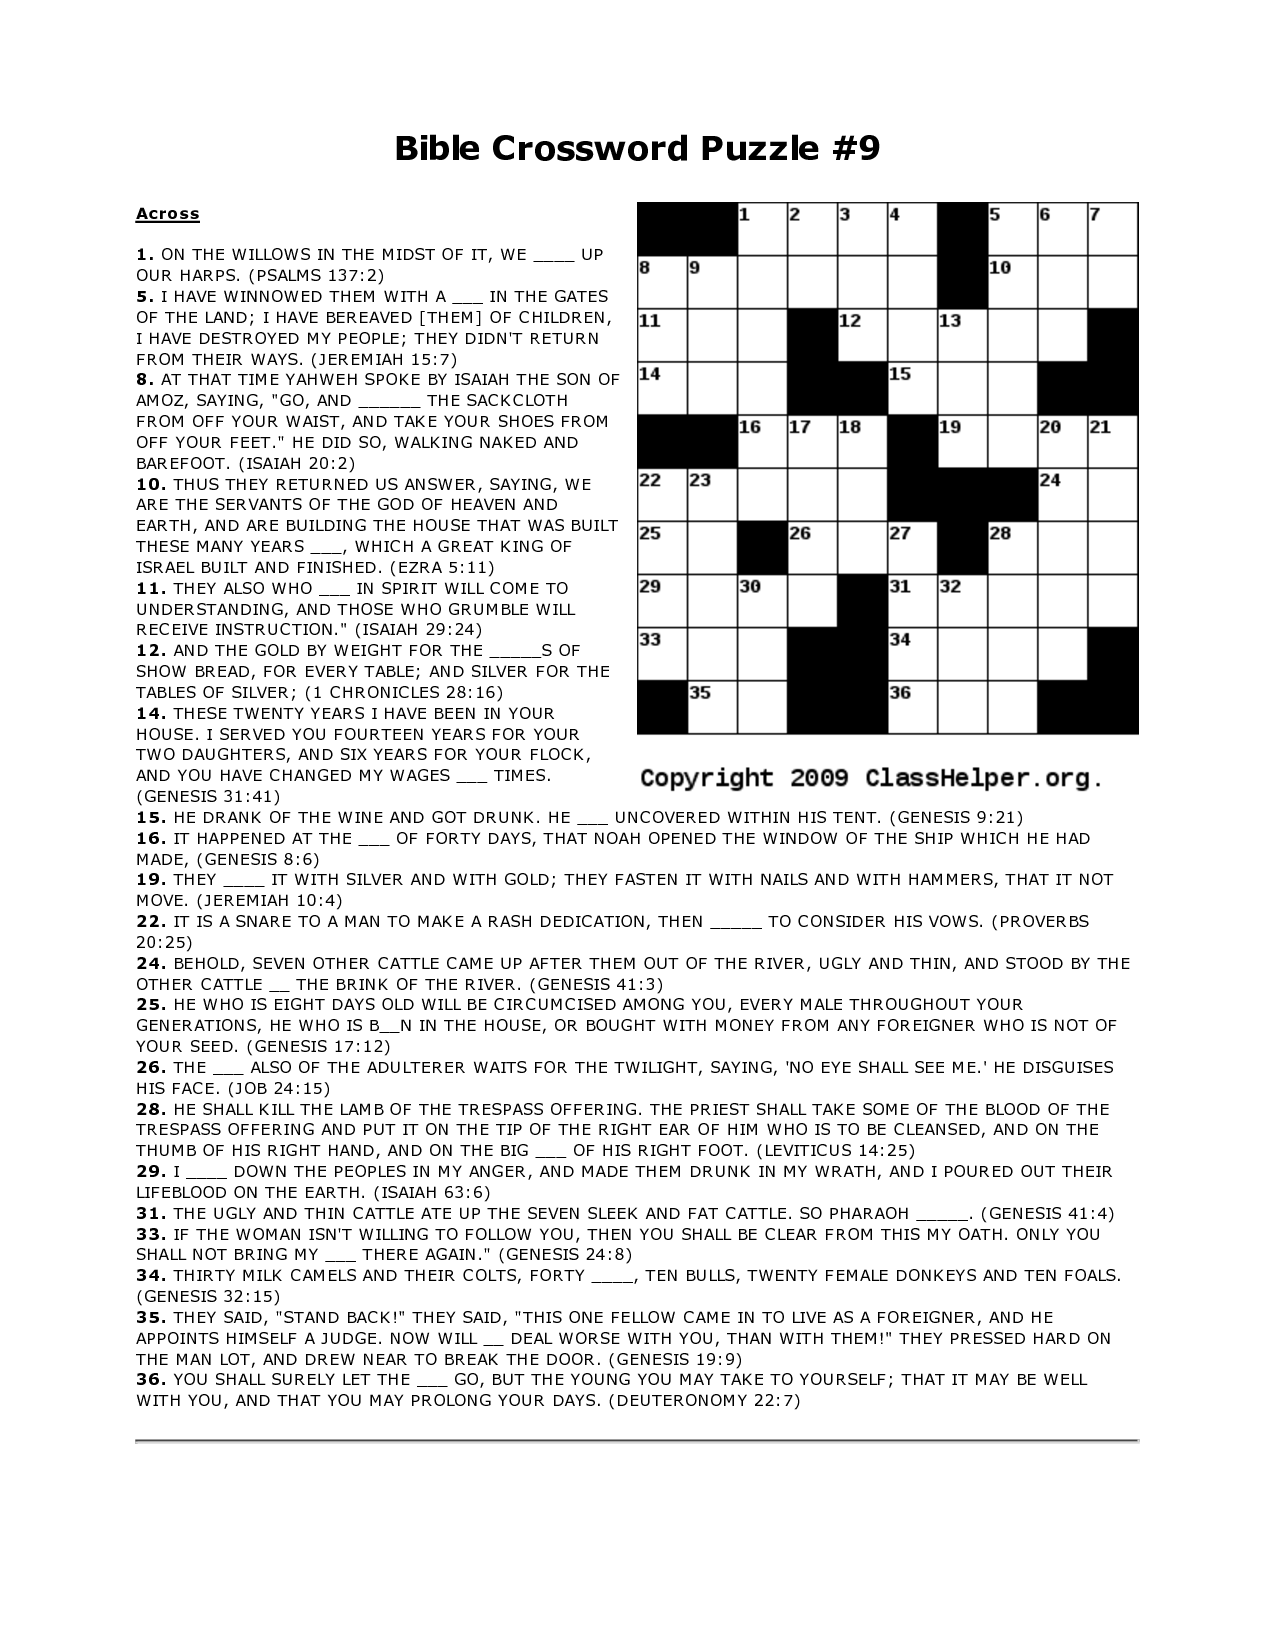 Obsessed image with bible crossword puzzles printable with answers